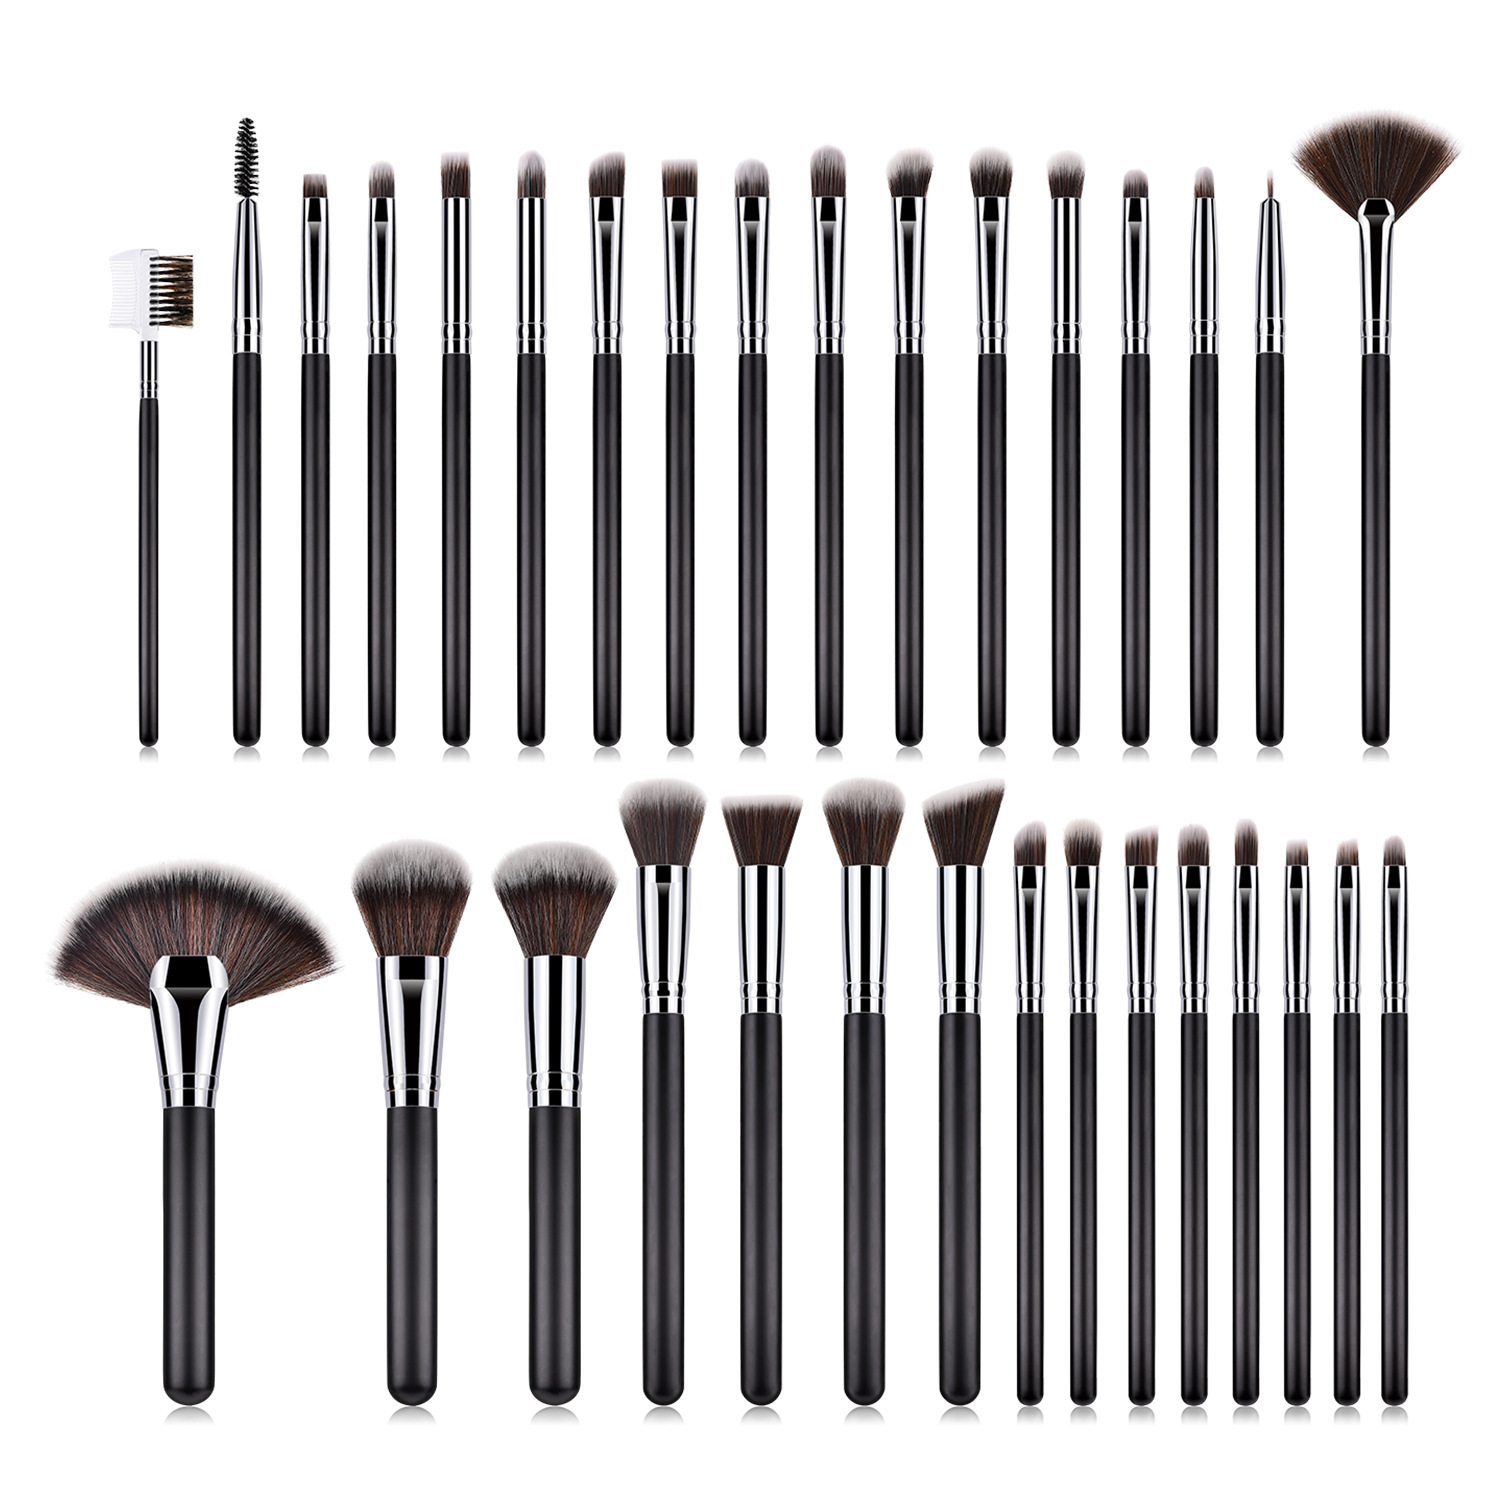 32 pcs makeup brush set MB089